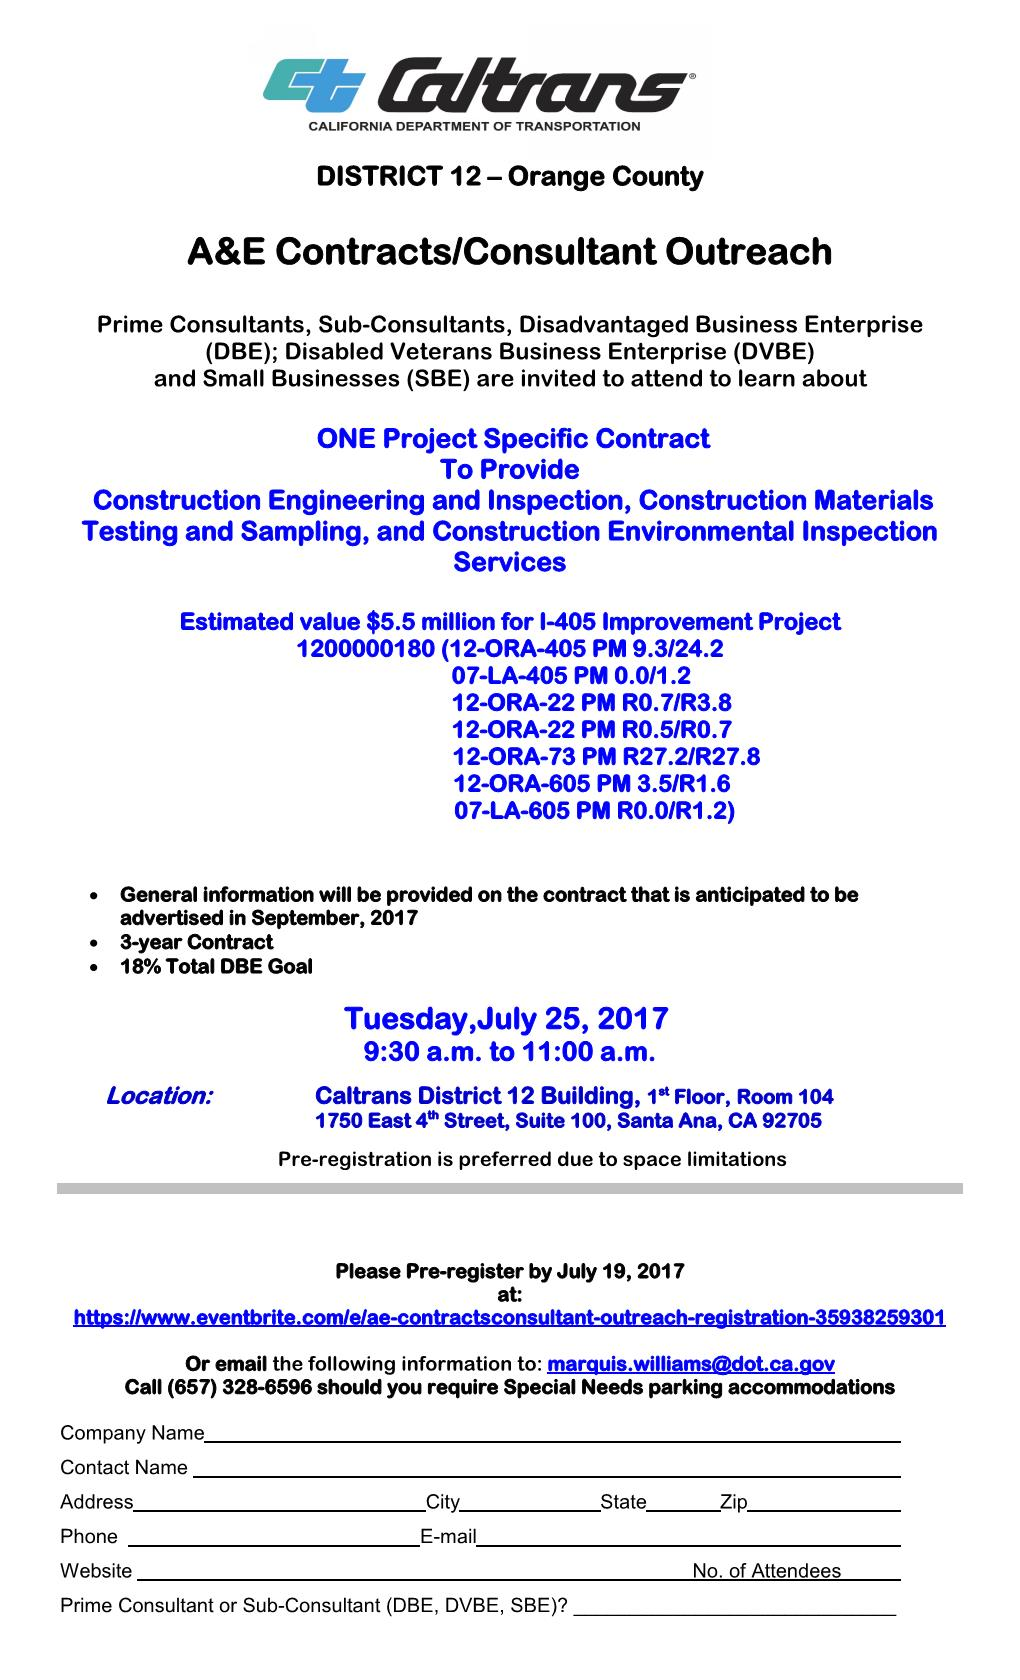 CALTRANS A&E CONTRACTS / CONSULTANT OUTREACH